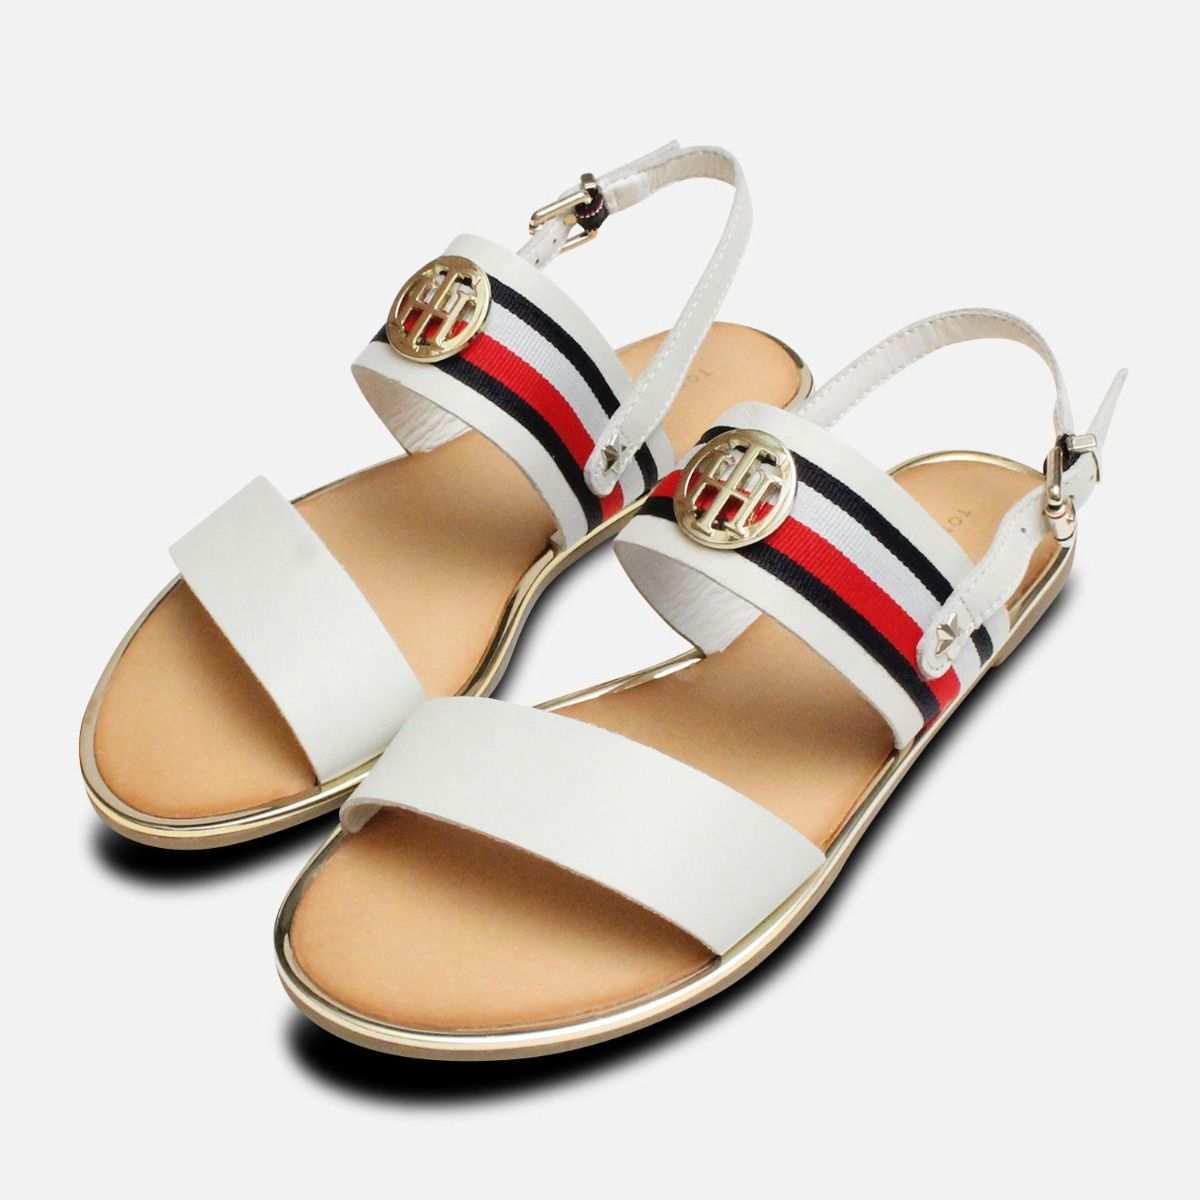 3542a6005 Tommy Hilfiger RWB White Summer Sandals with Gold Trim